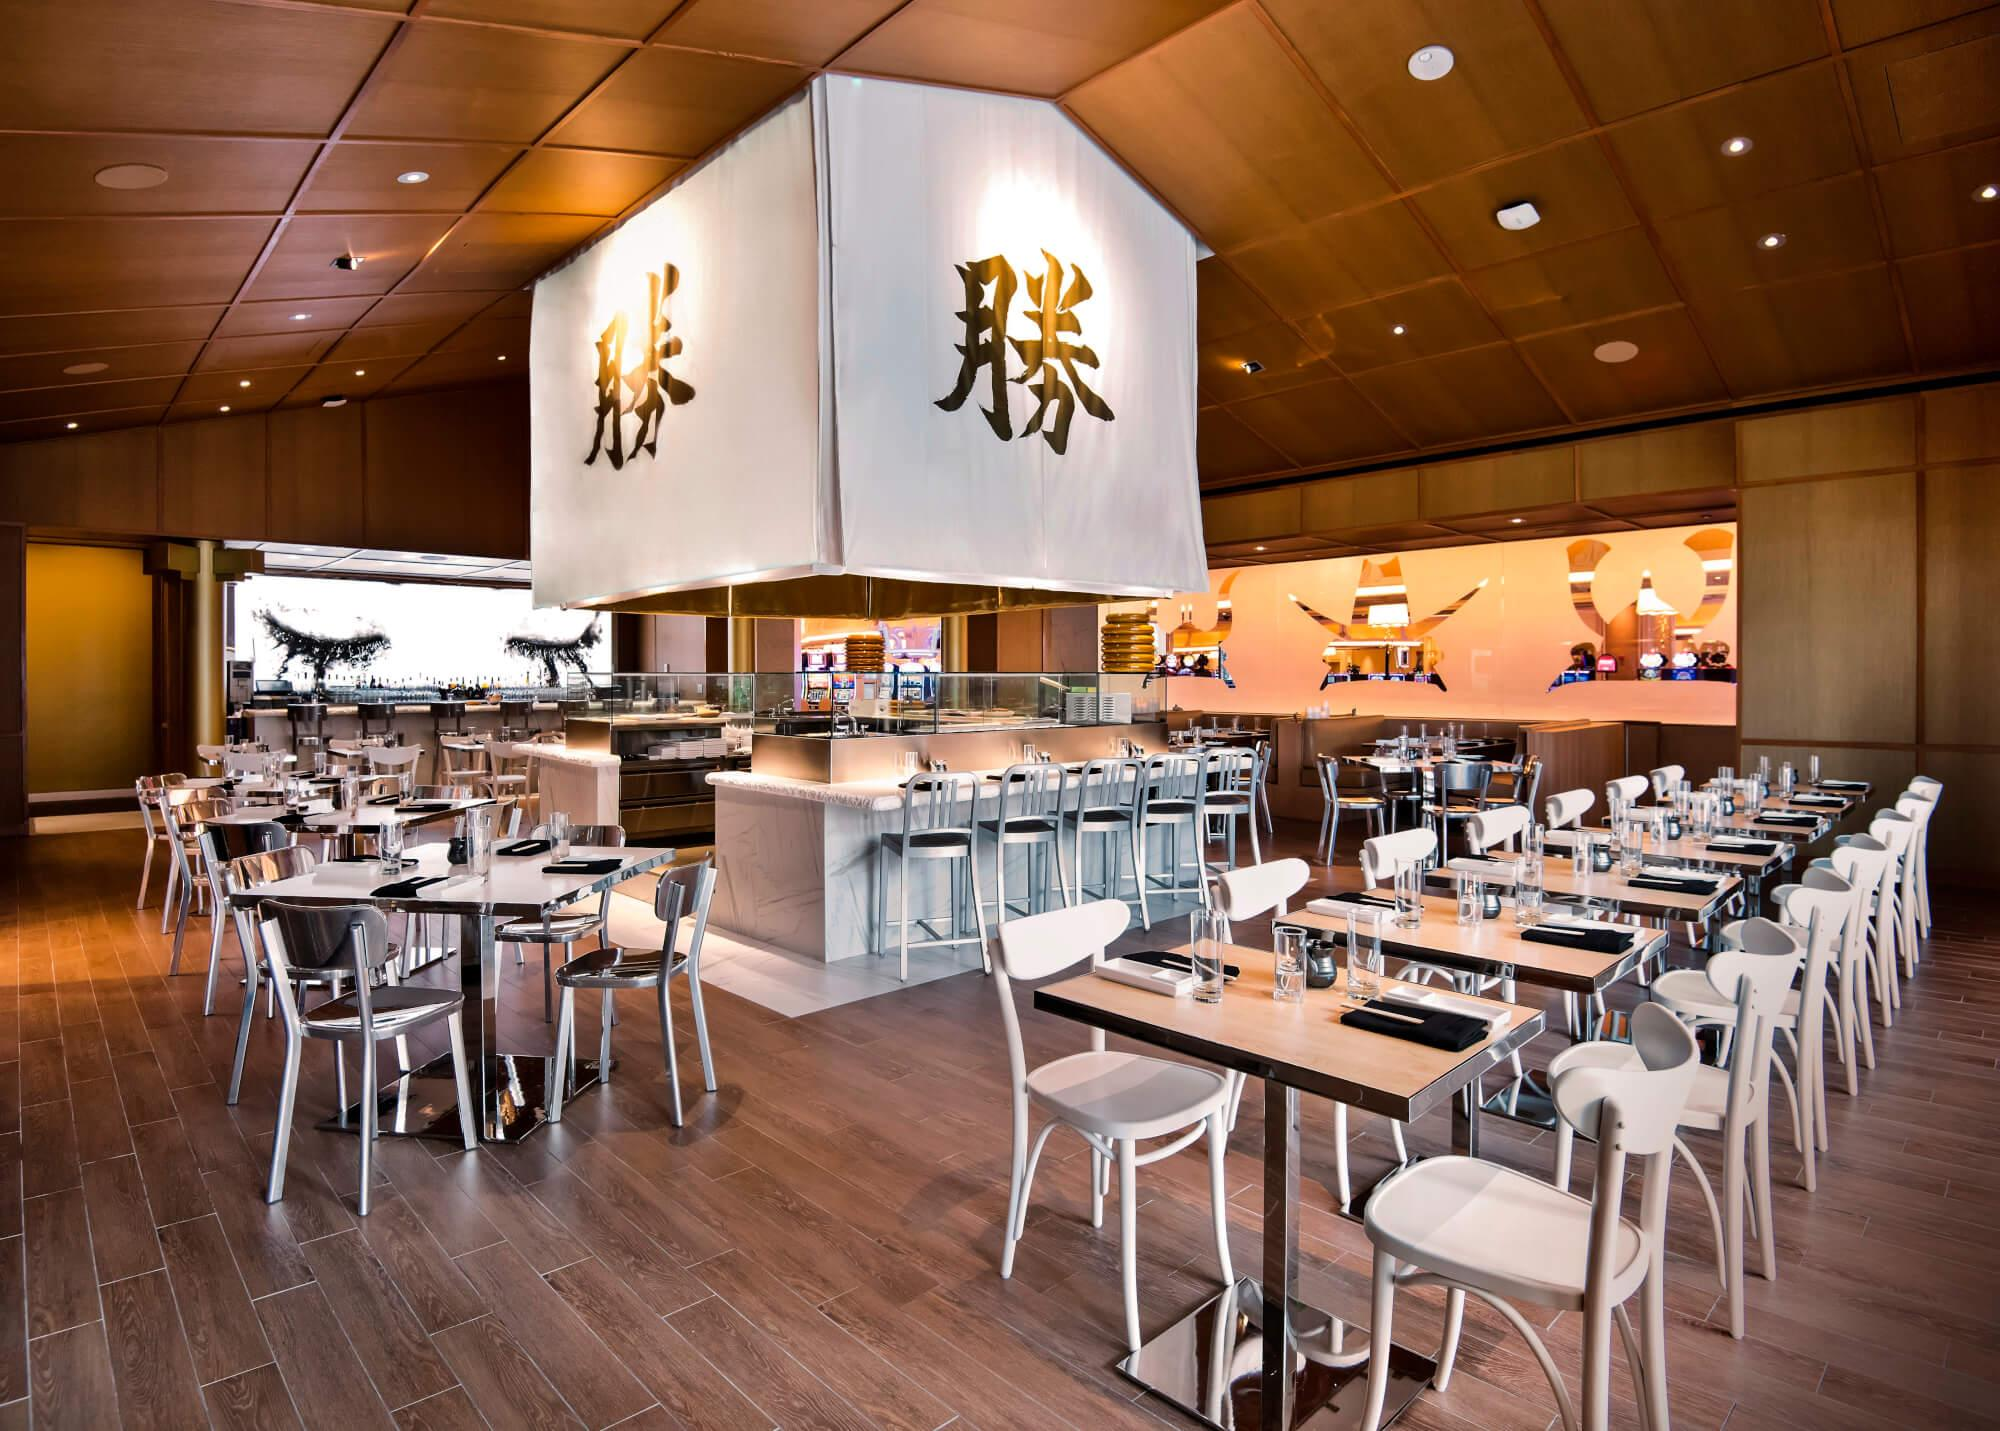 Katsuya Baha Mar dining room.